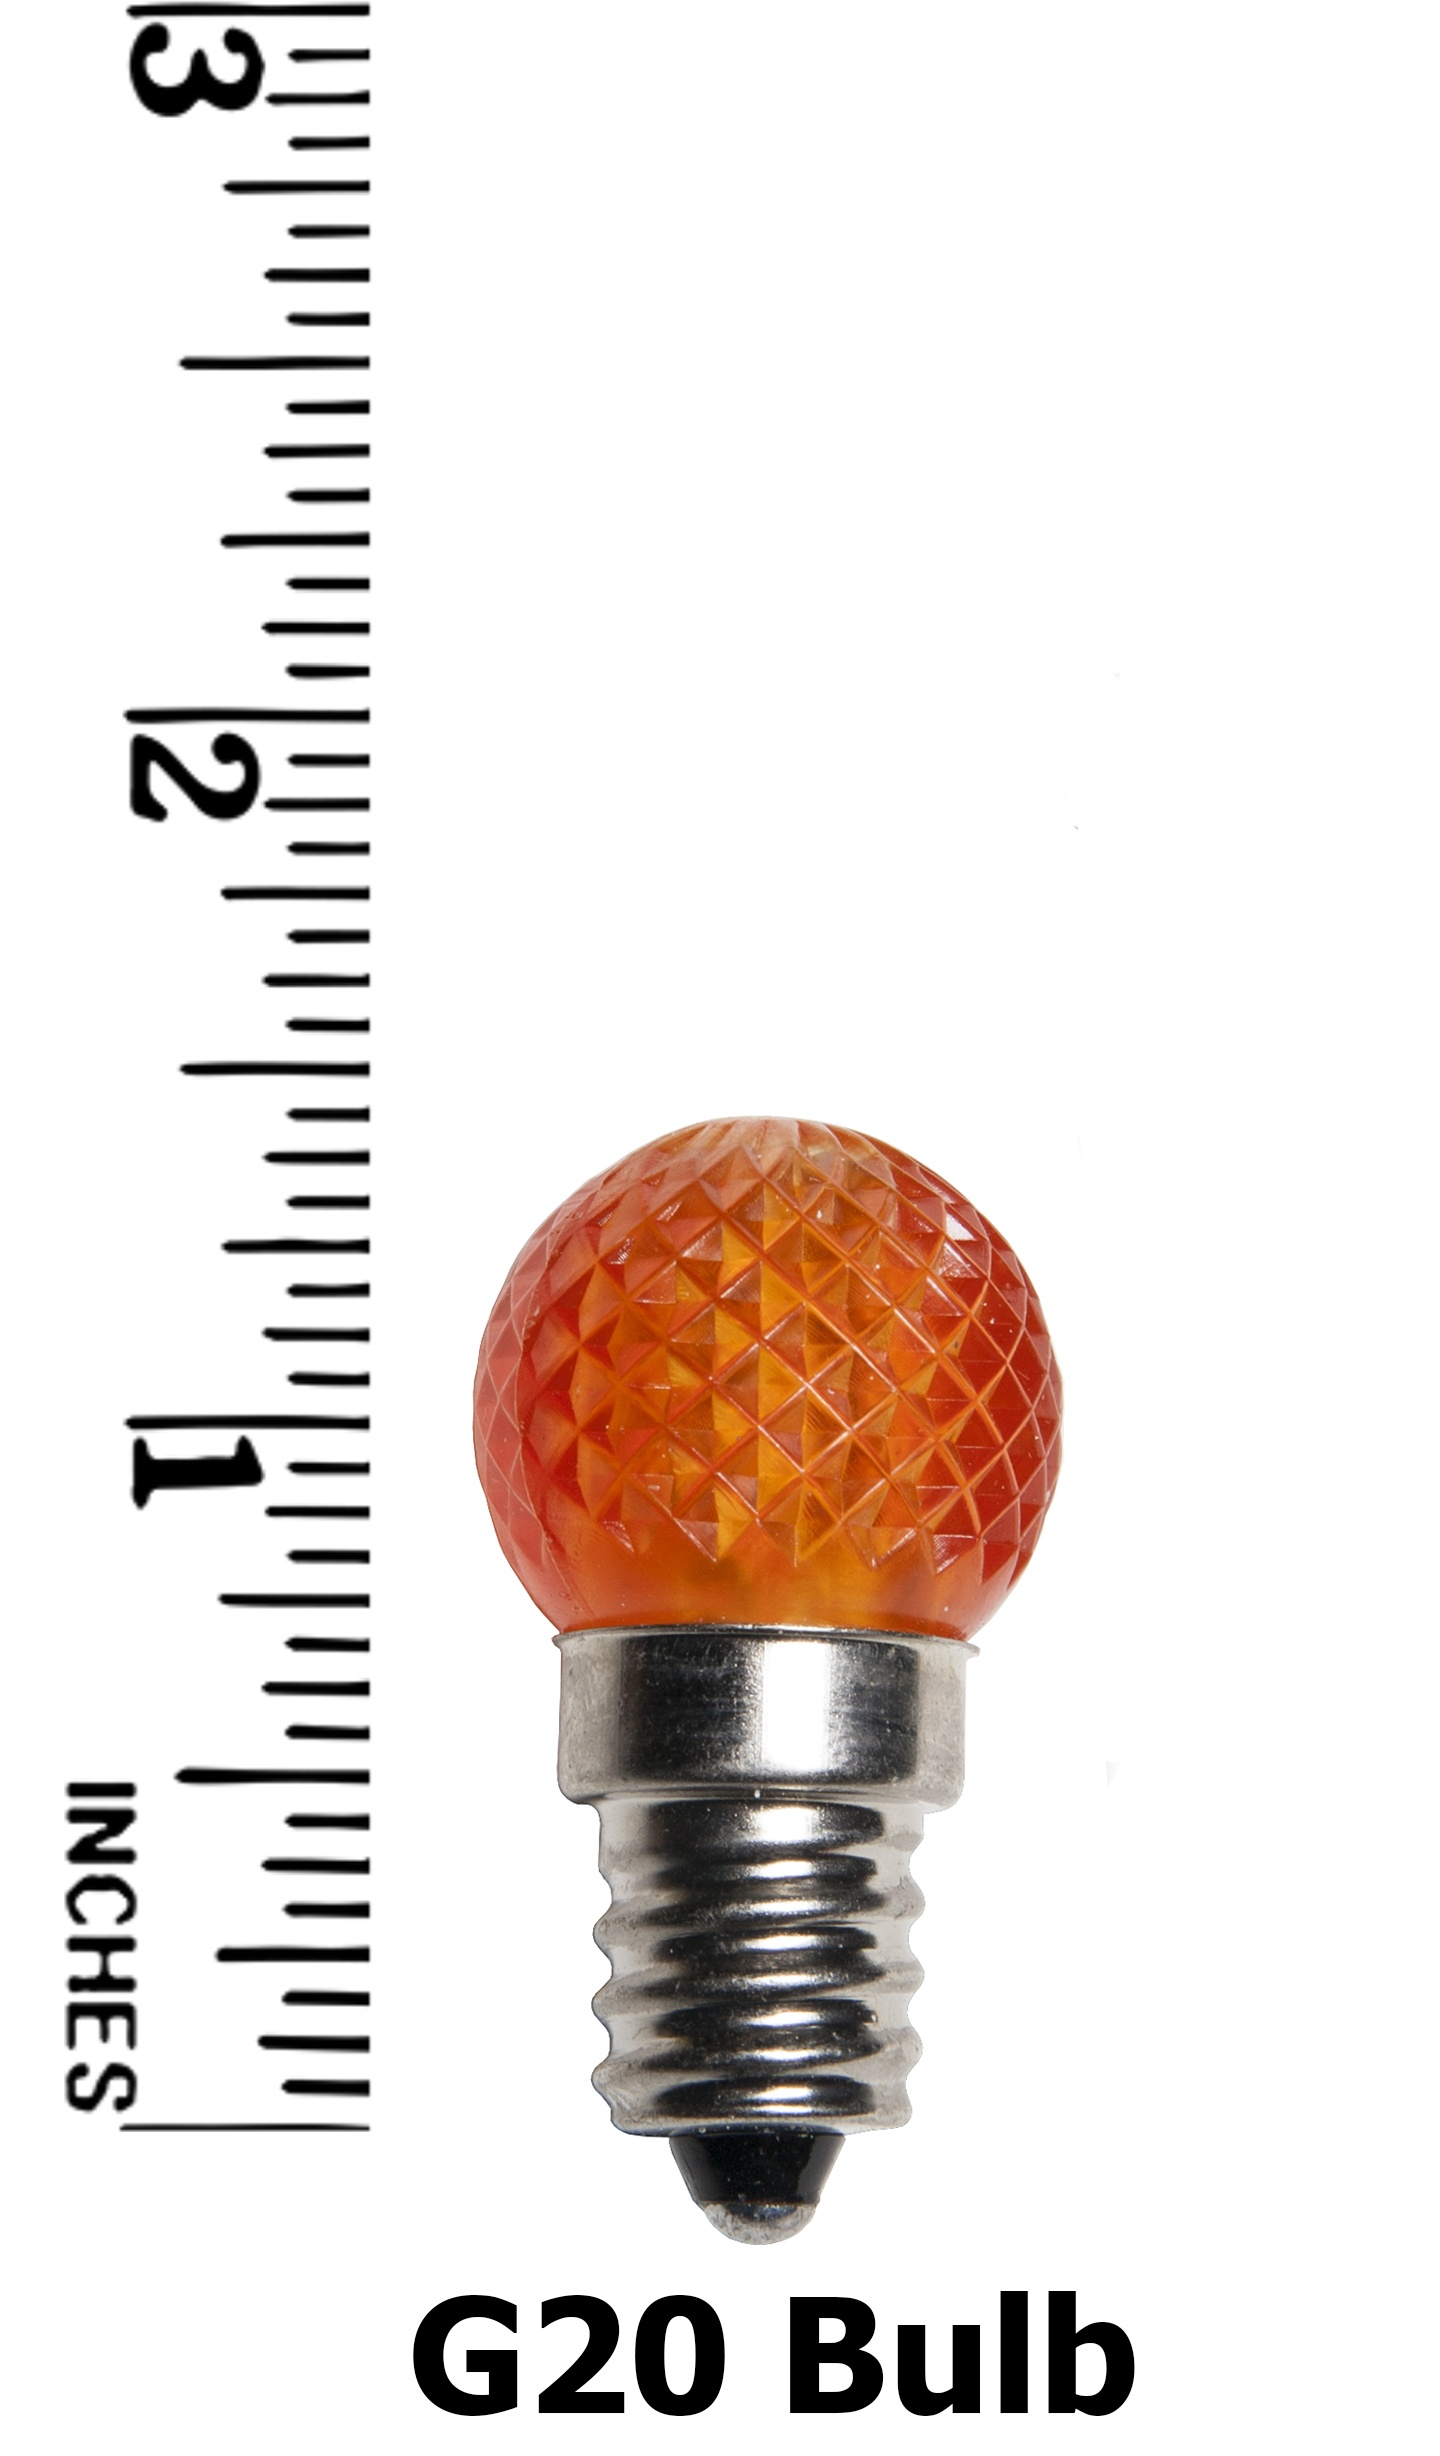 G20 Bulb Measurement